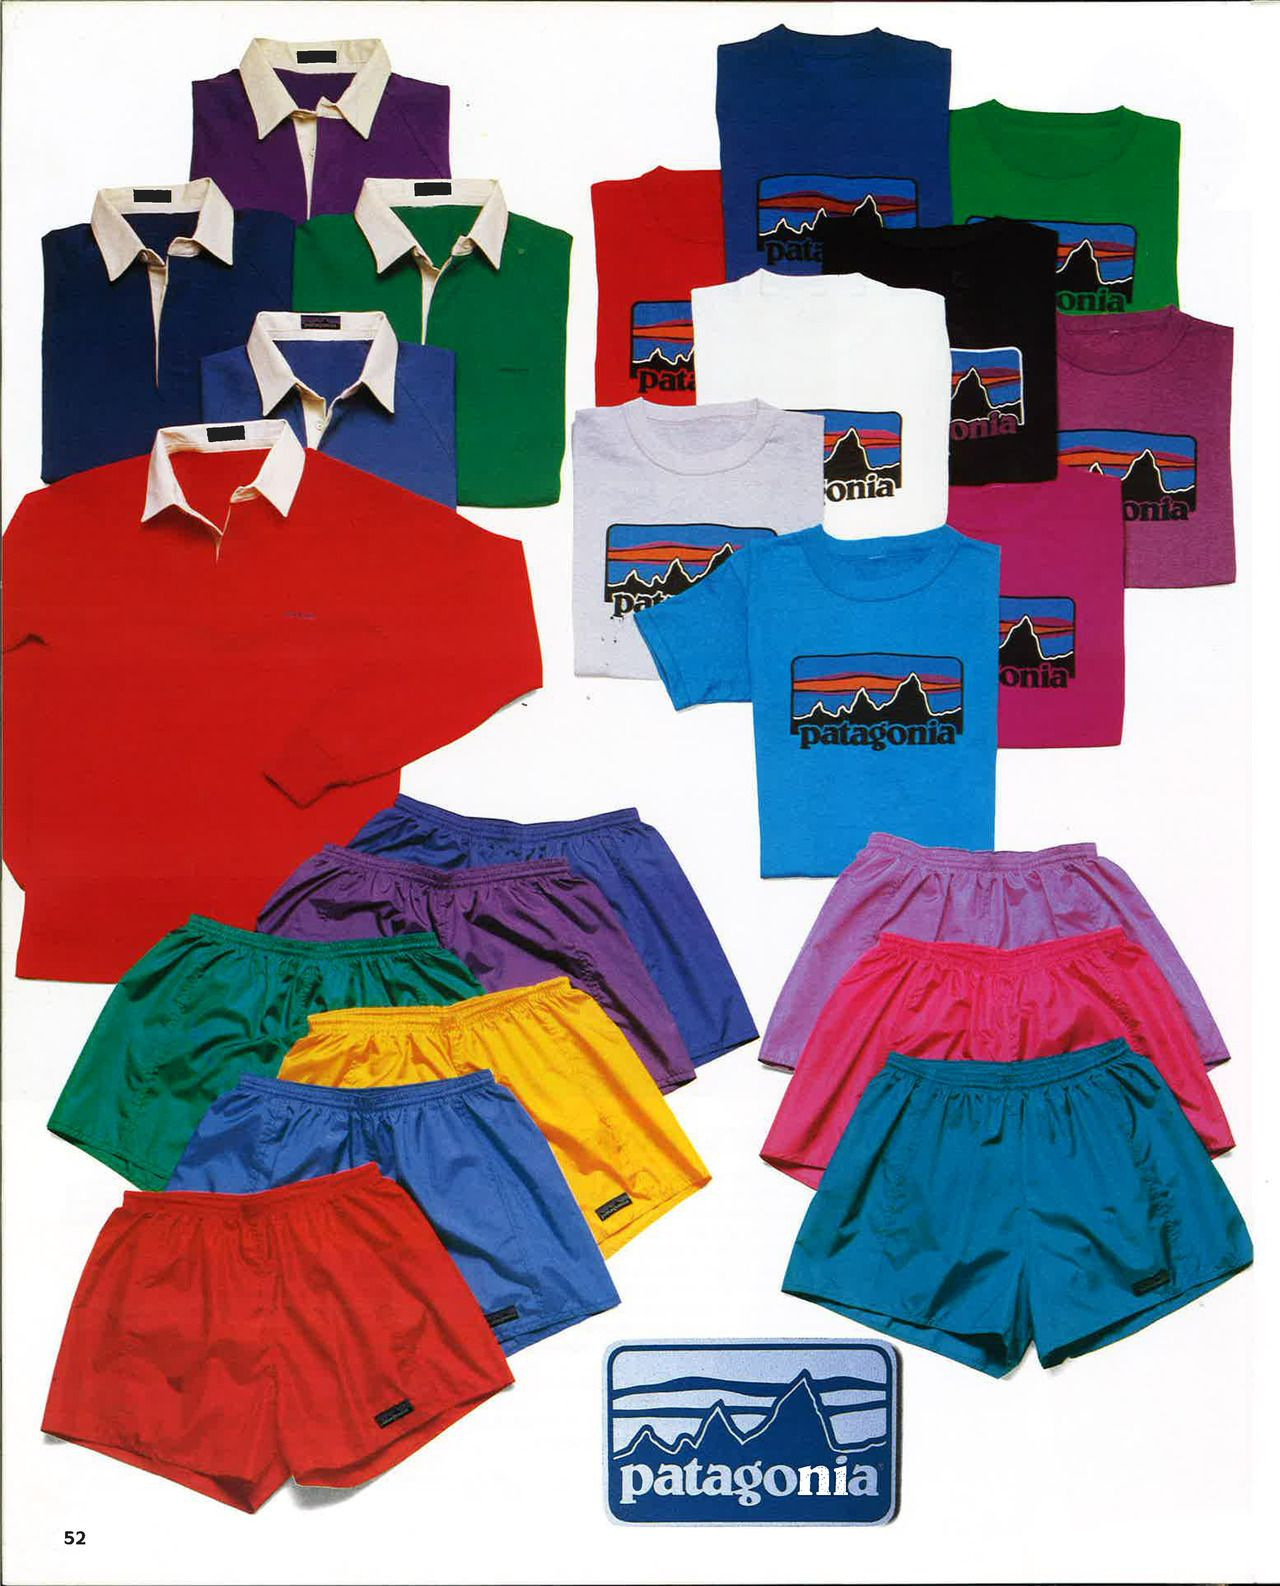 Rugby shirts, T-shirts and Baggies from the Patagonia Spring 1985 Catalog.